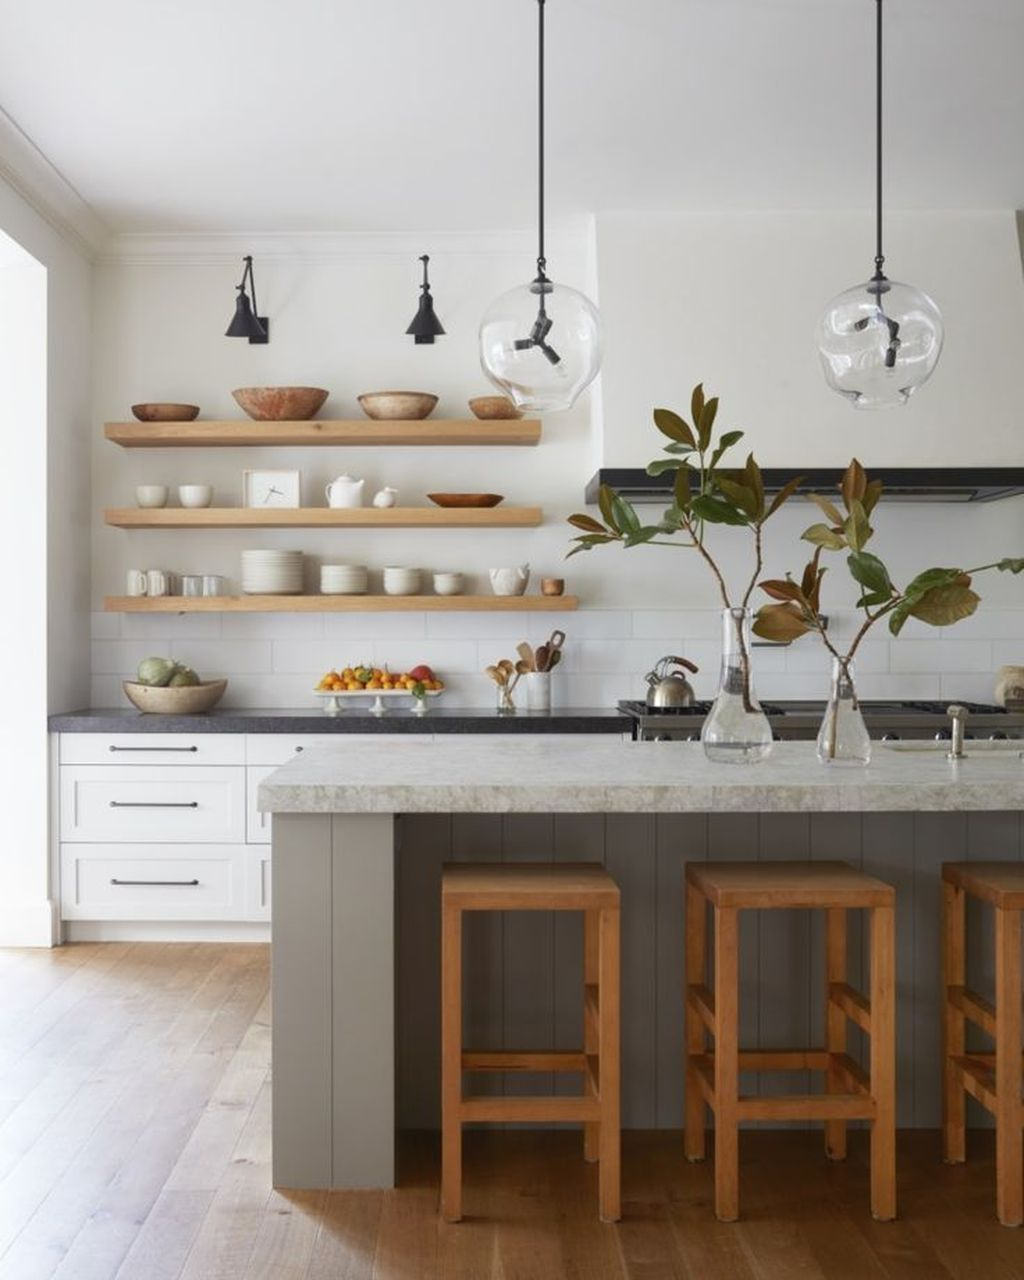 Gorgeous Kitchen Shelves Ideas You Must Have 32